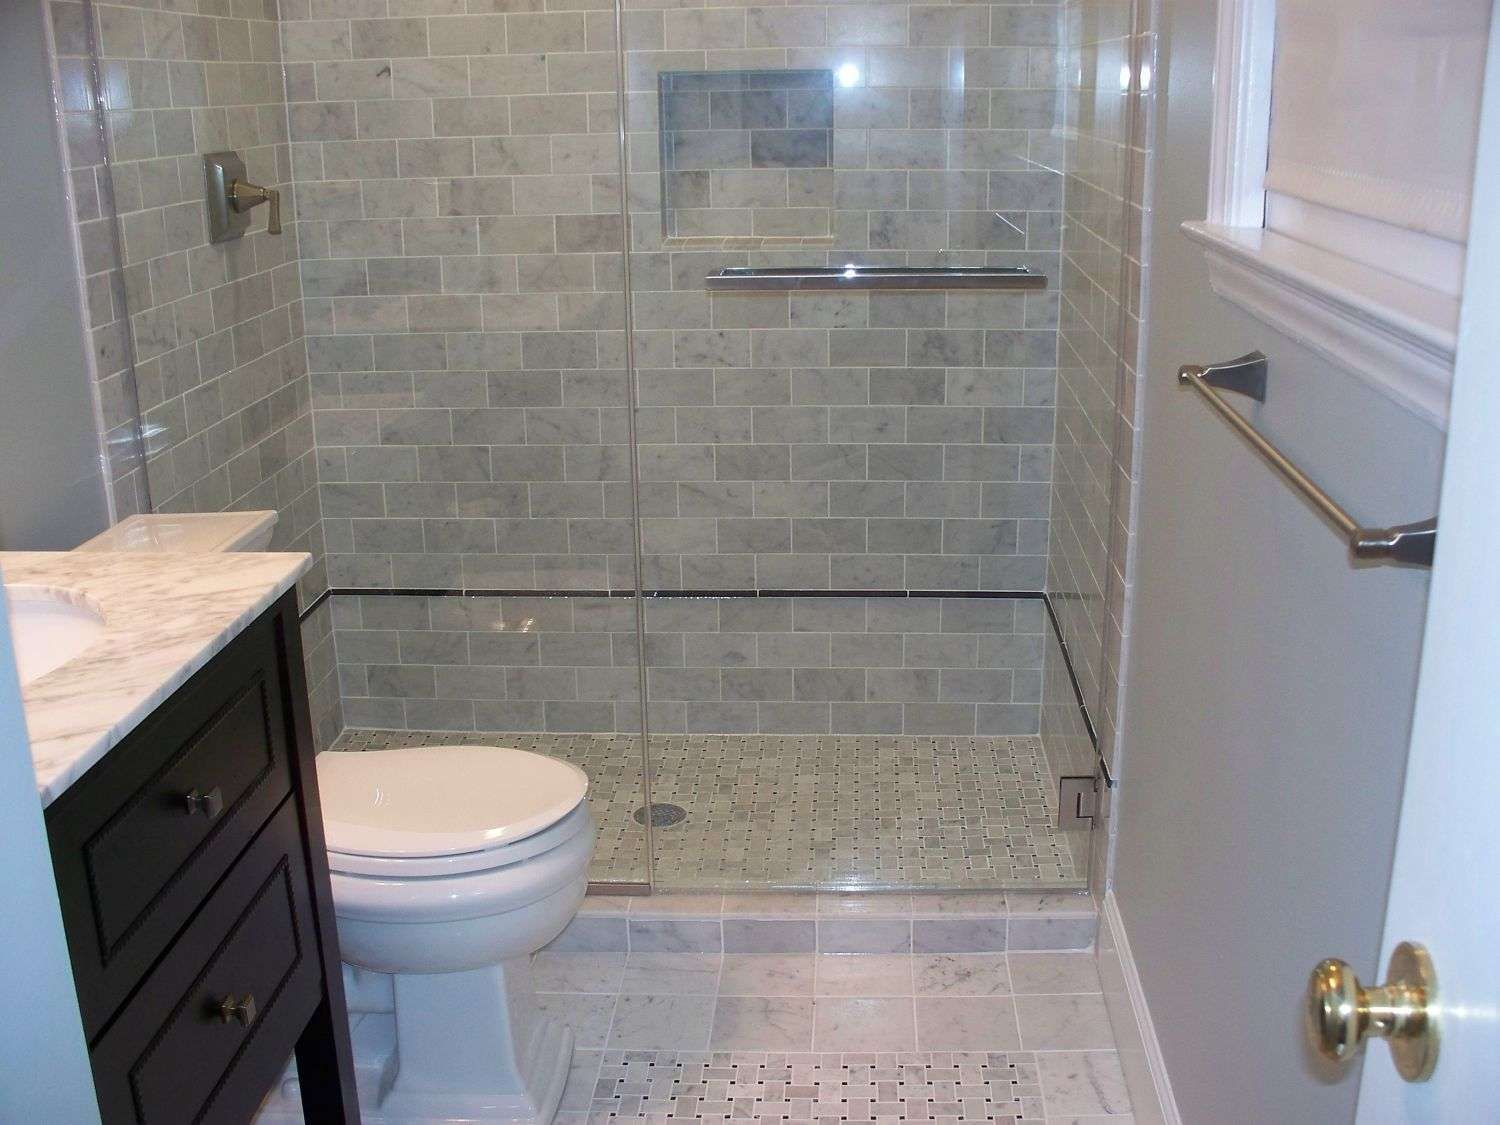 Modern bathroom remodel designer jennifer jones designer find interesting and elegant bathroom shower tile ideas right here know some of the most popular shower tile design ideas today and create an elegant dailygadgetfo Images